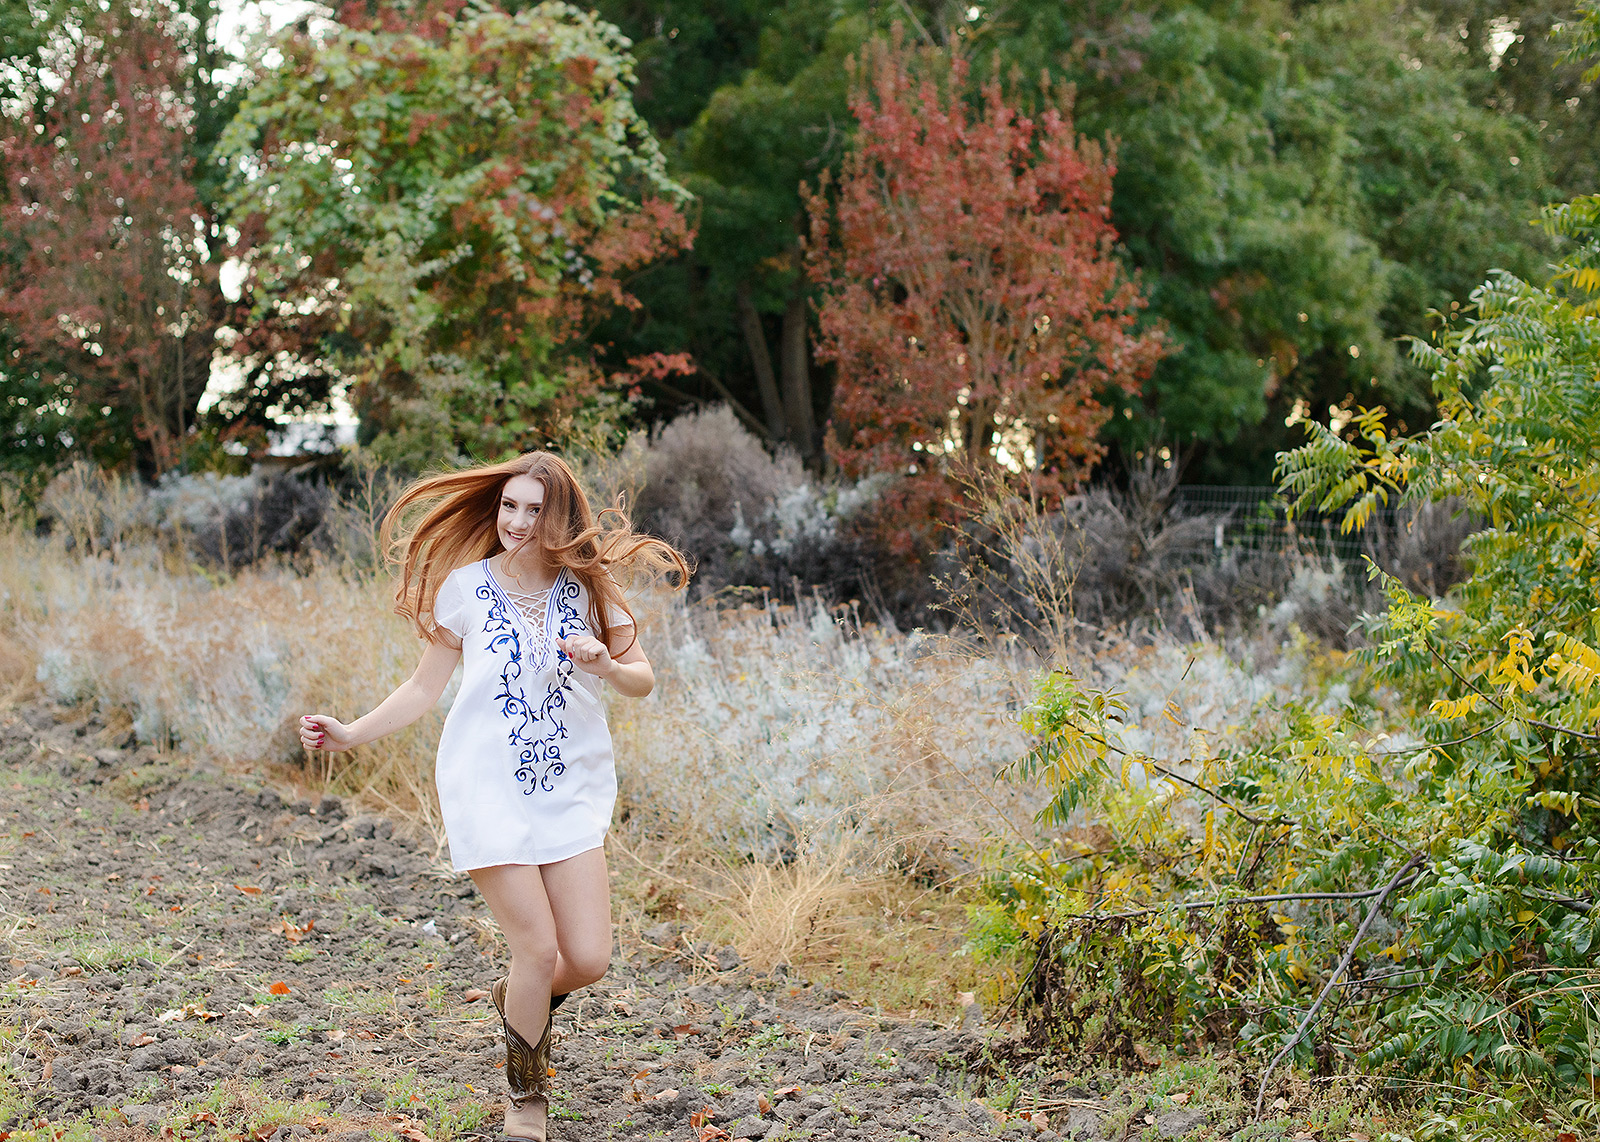 Senior Girl Running in Cowboy Boots and Tunic in Sacramento Outdoor Field Foliage